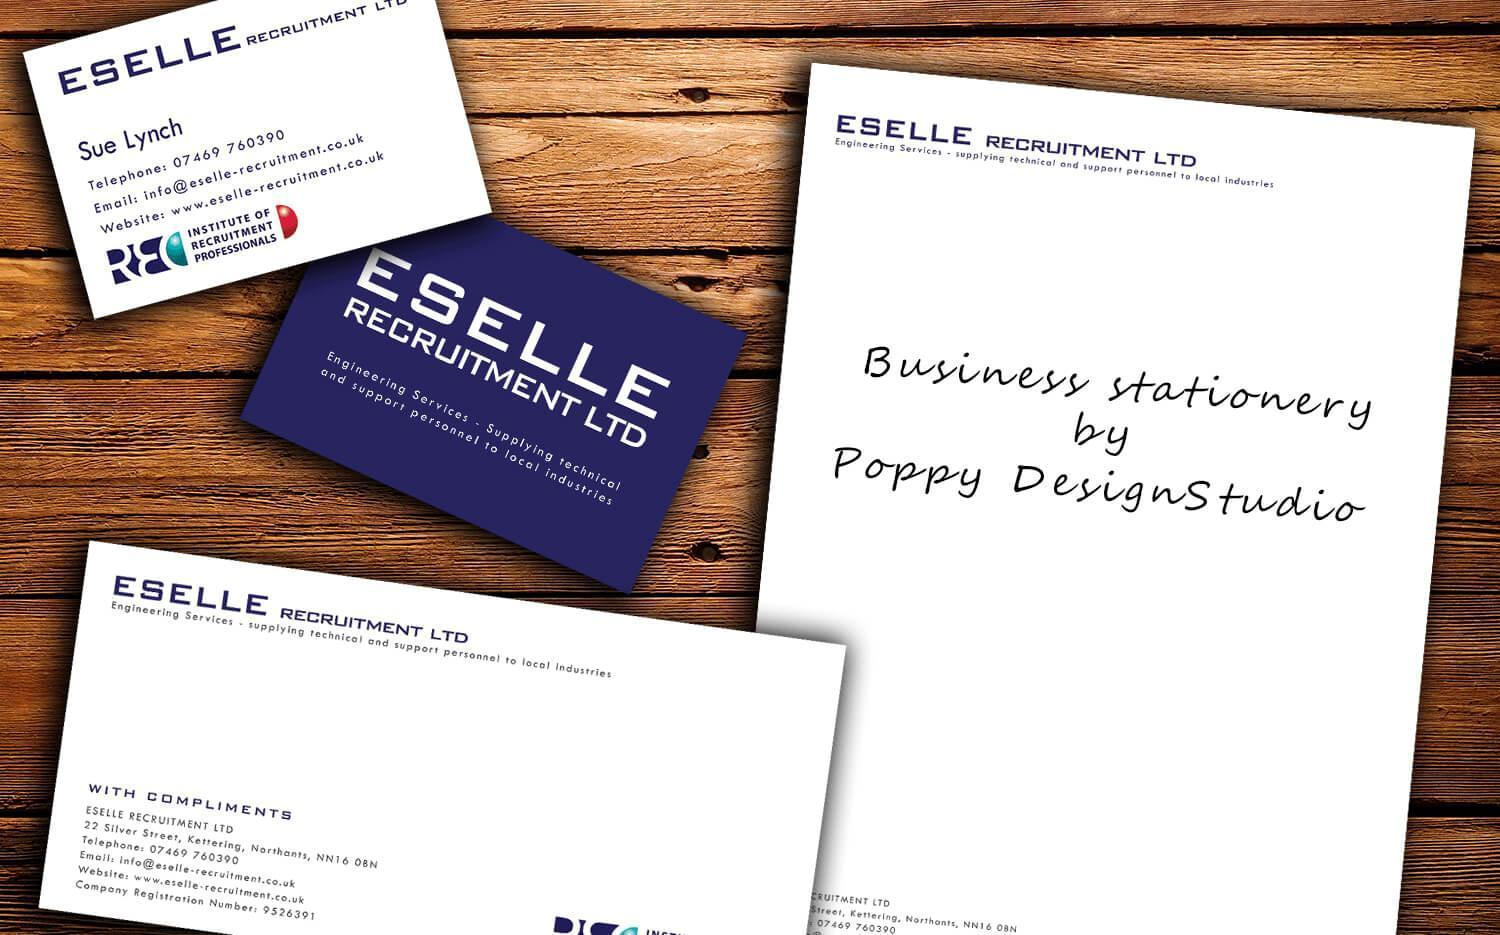 Business Stationery Design & Printing Eselle Recruitment